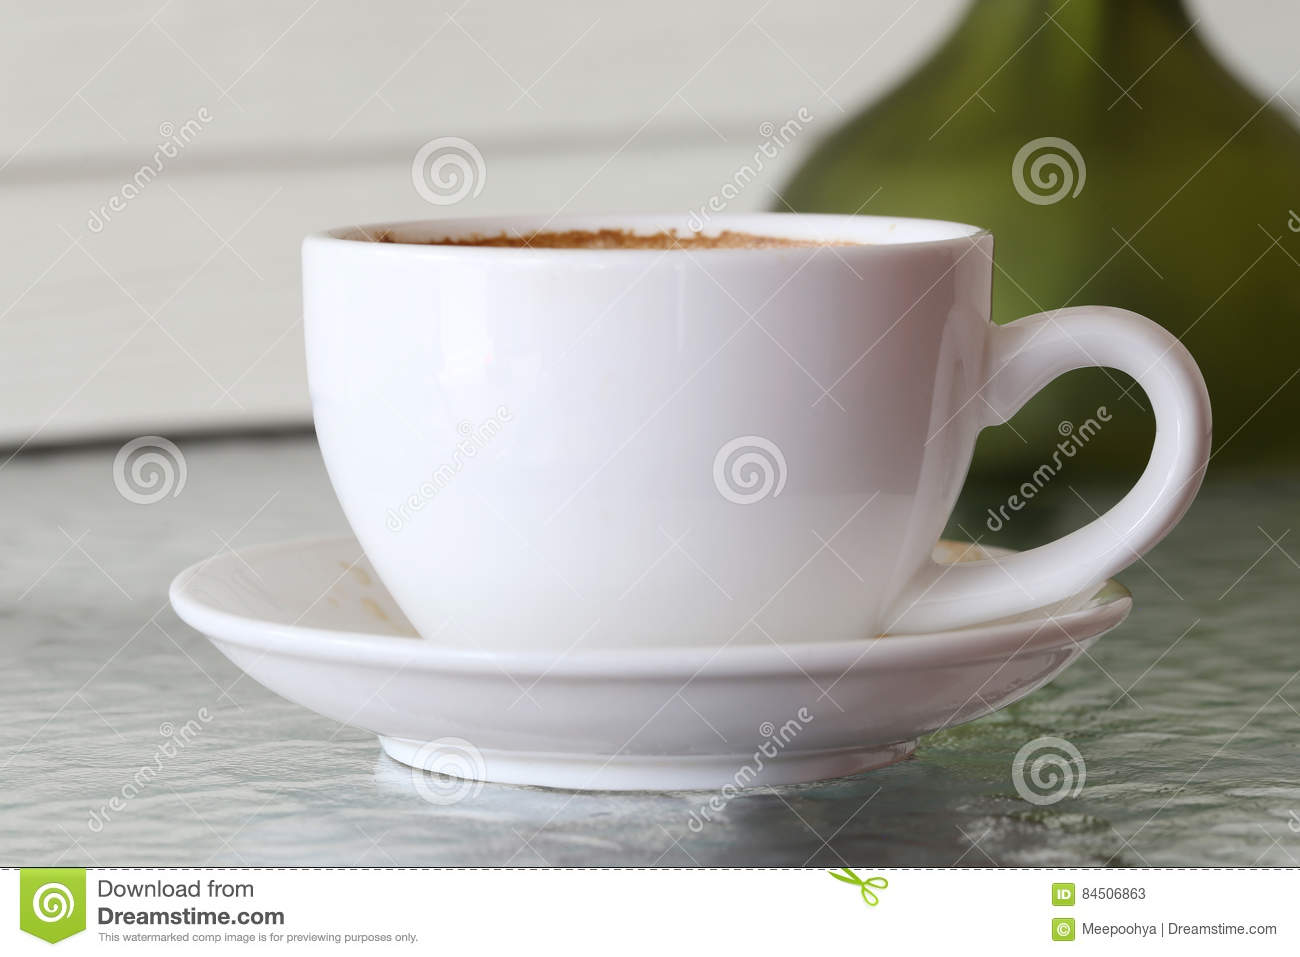 Mug A Cafe White Coffee Mug On Table Stock Image Image Of White 84506863